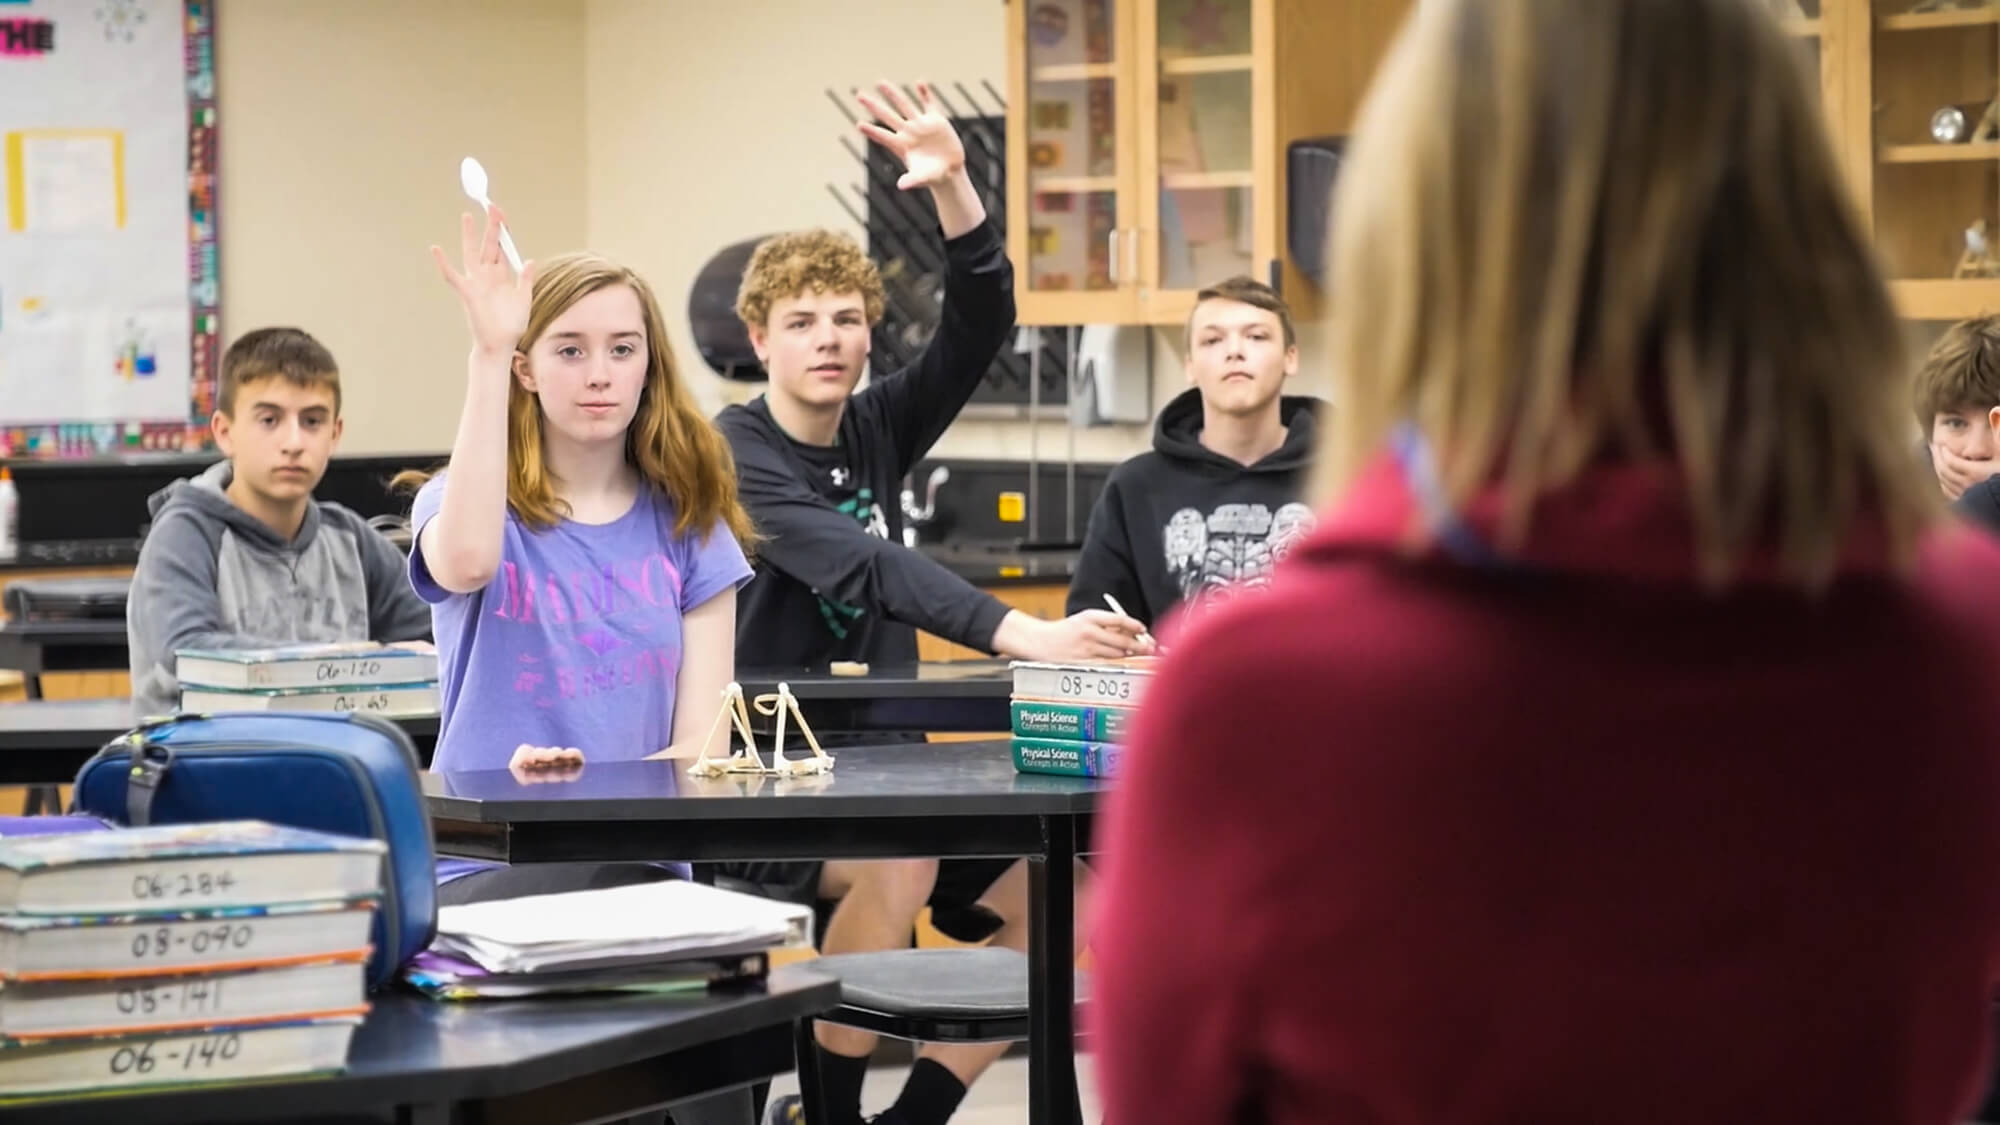 Classroom Interaction - Raised Hands